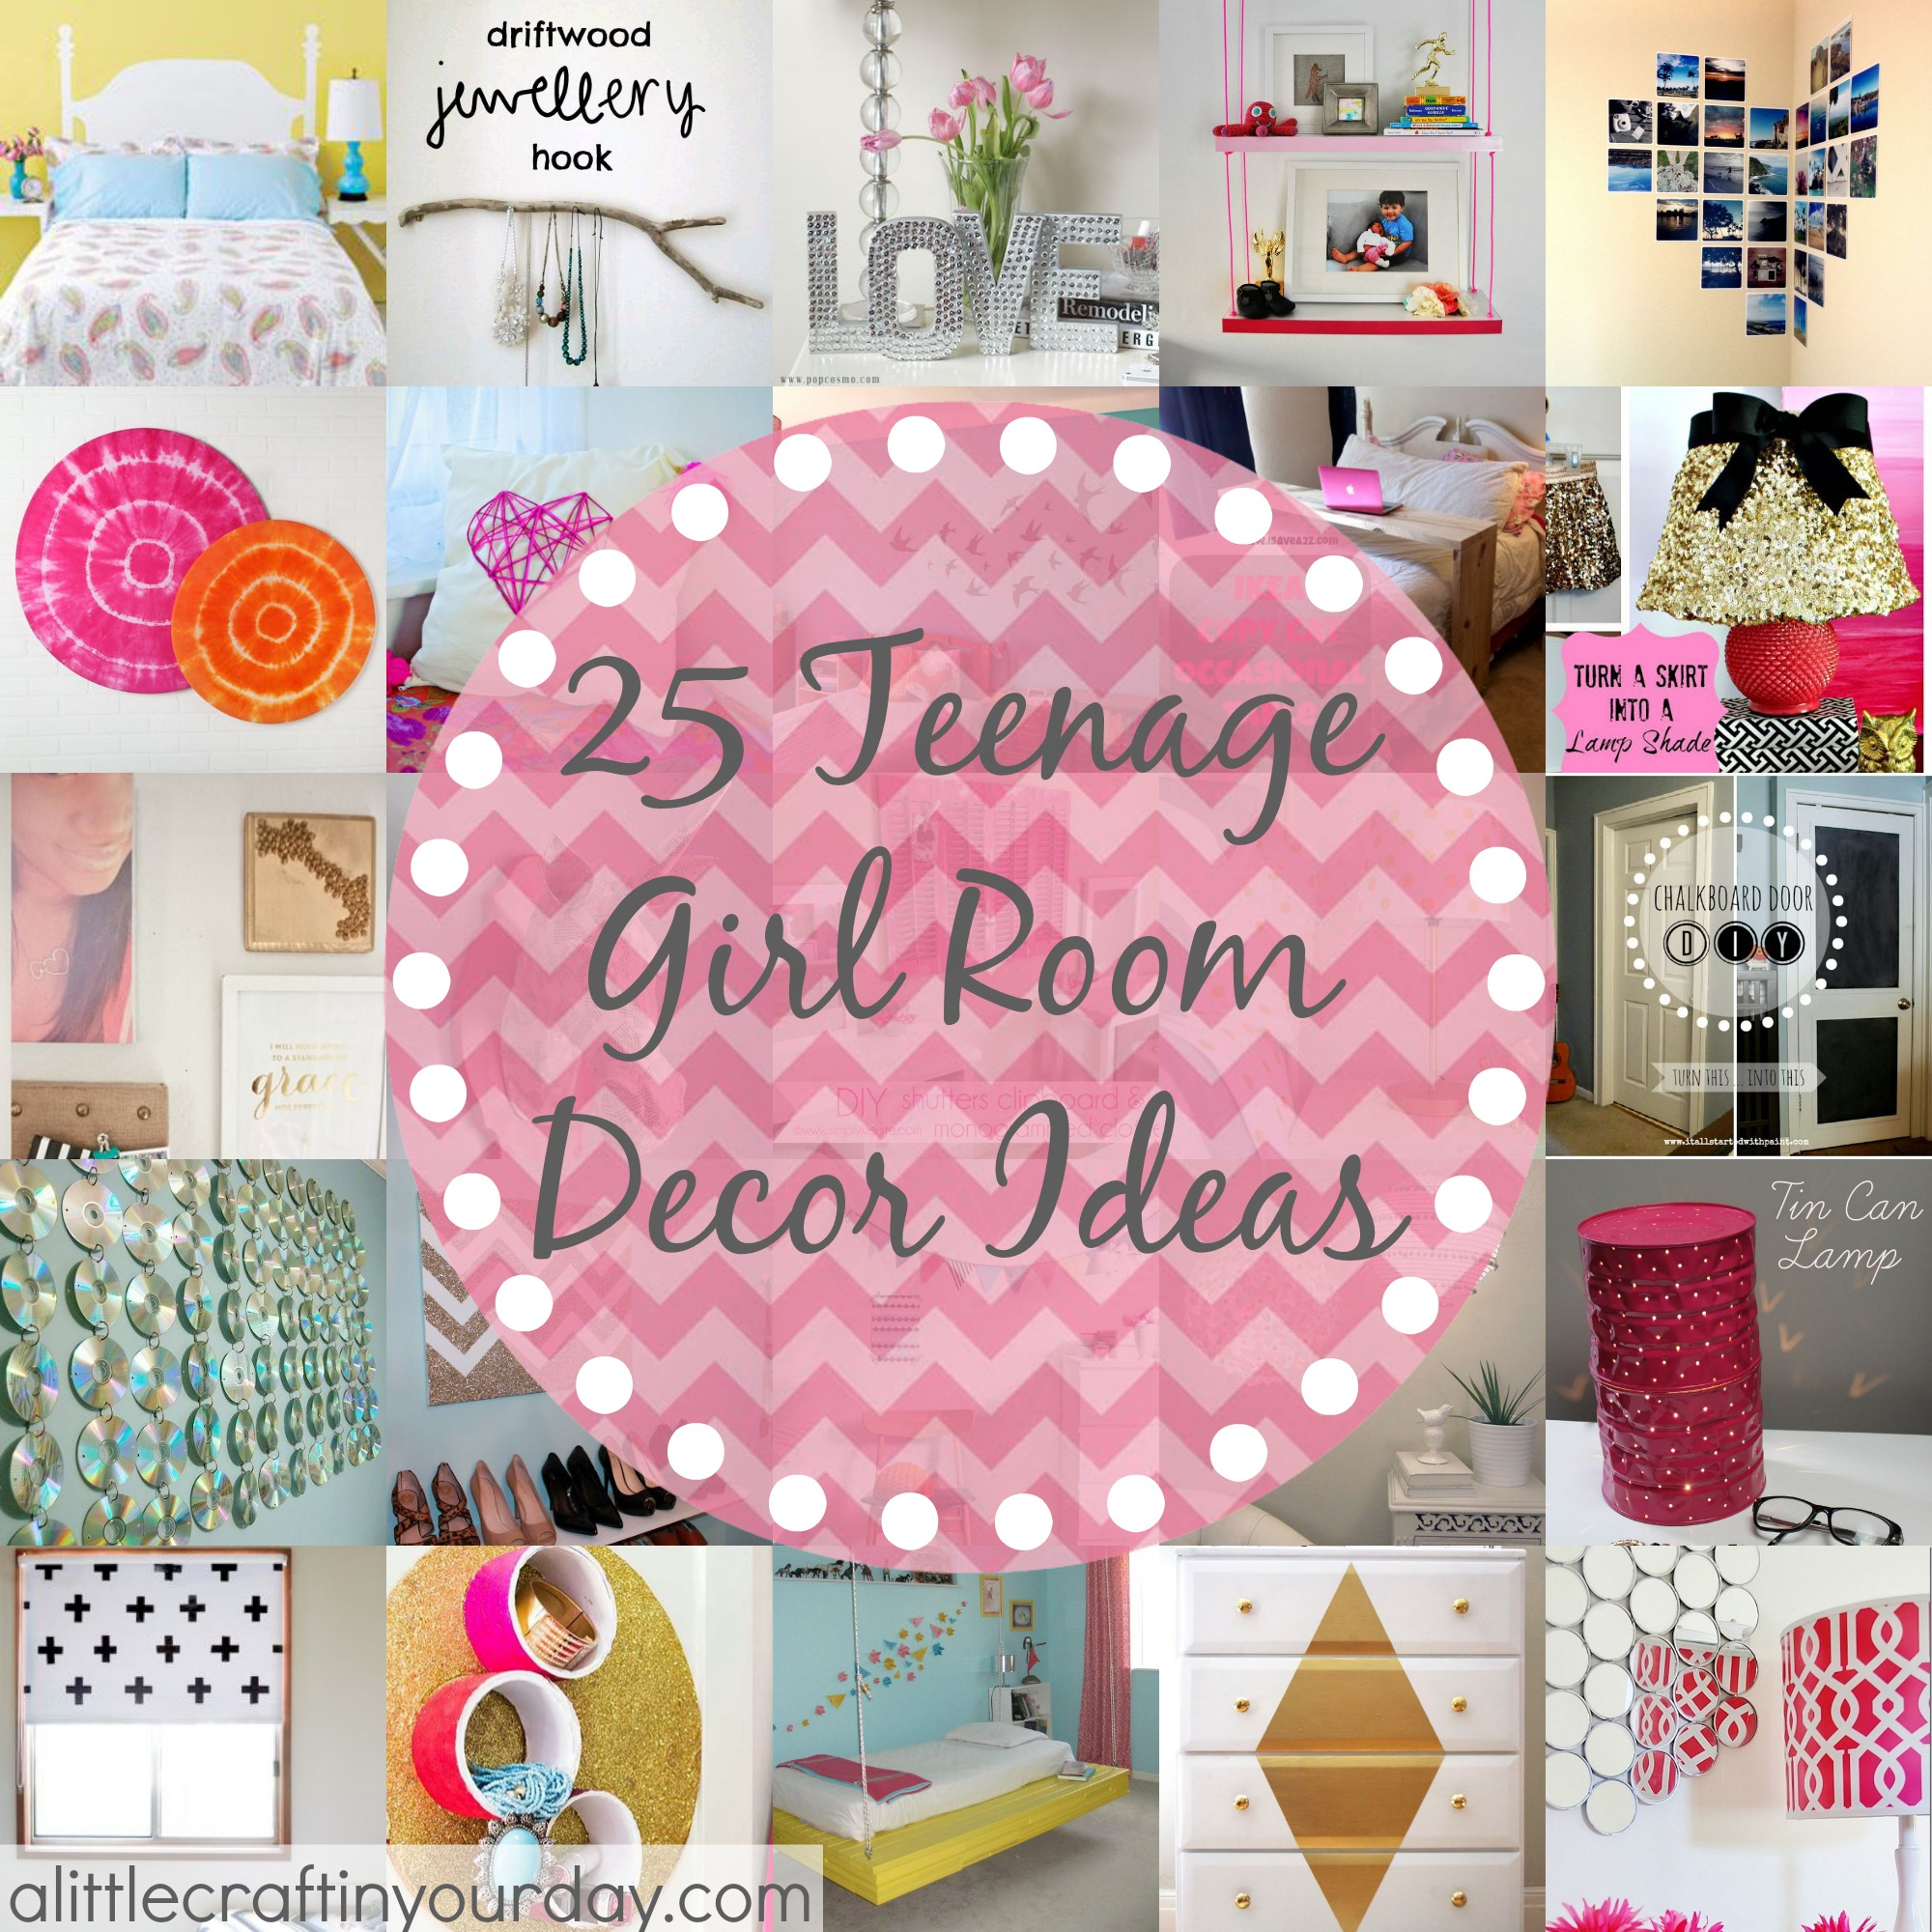 25 more teenage girl room decor ideas a little craft in for Room decor ideas handmade